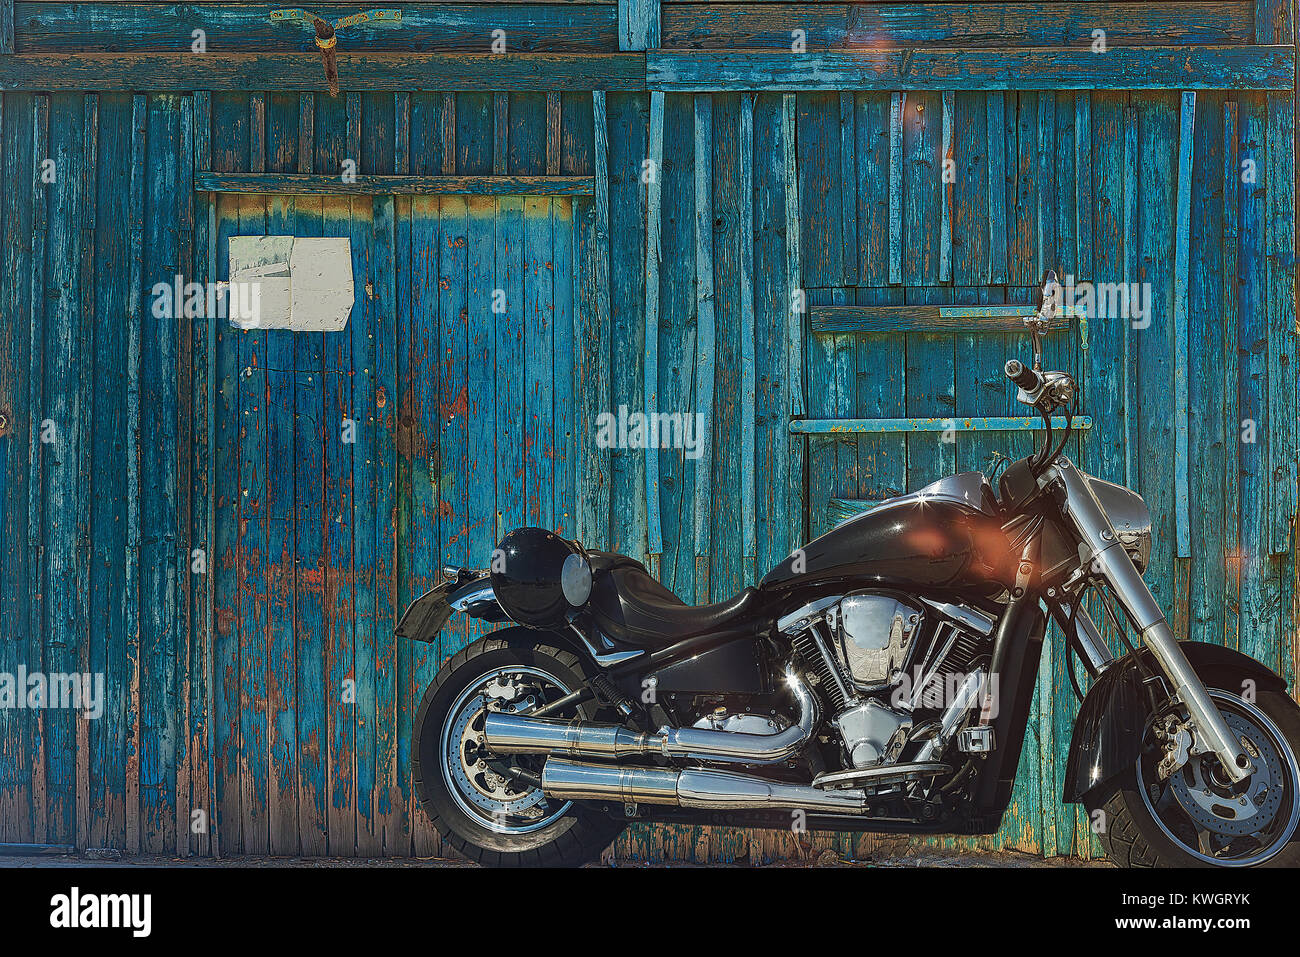 Motorcycle parked in a street on the island of Syros with a blue wooden wall as background. - Stock Image